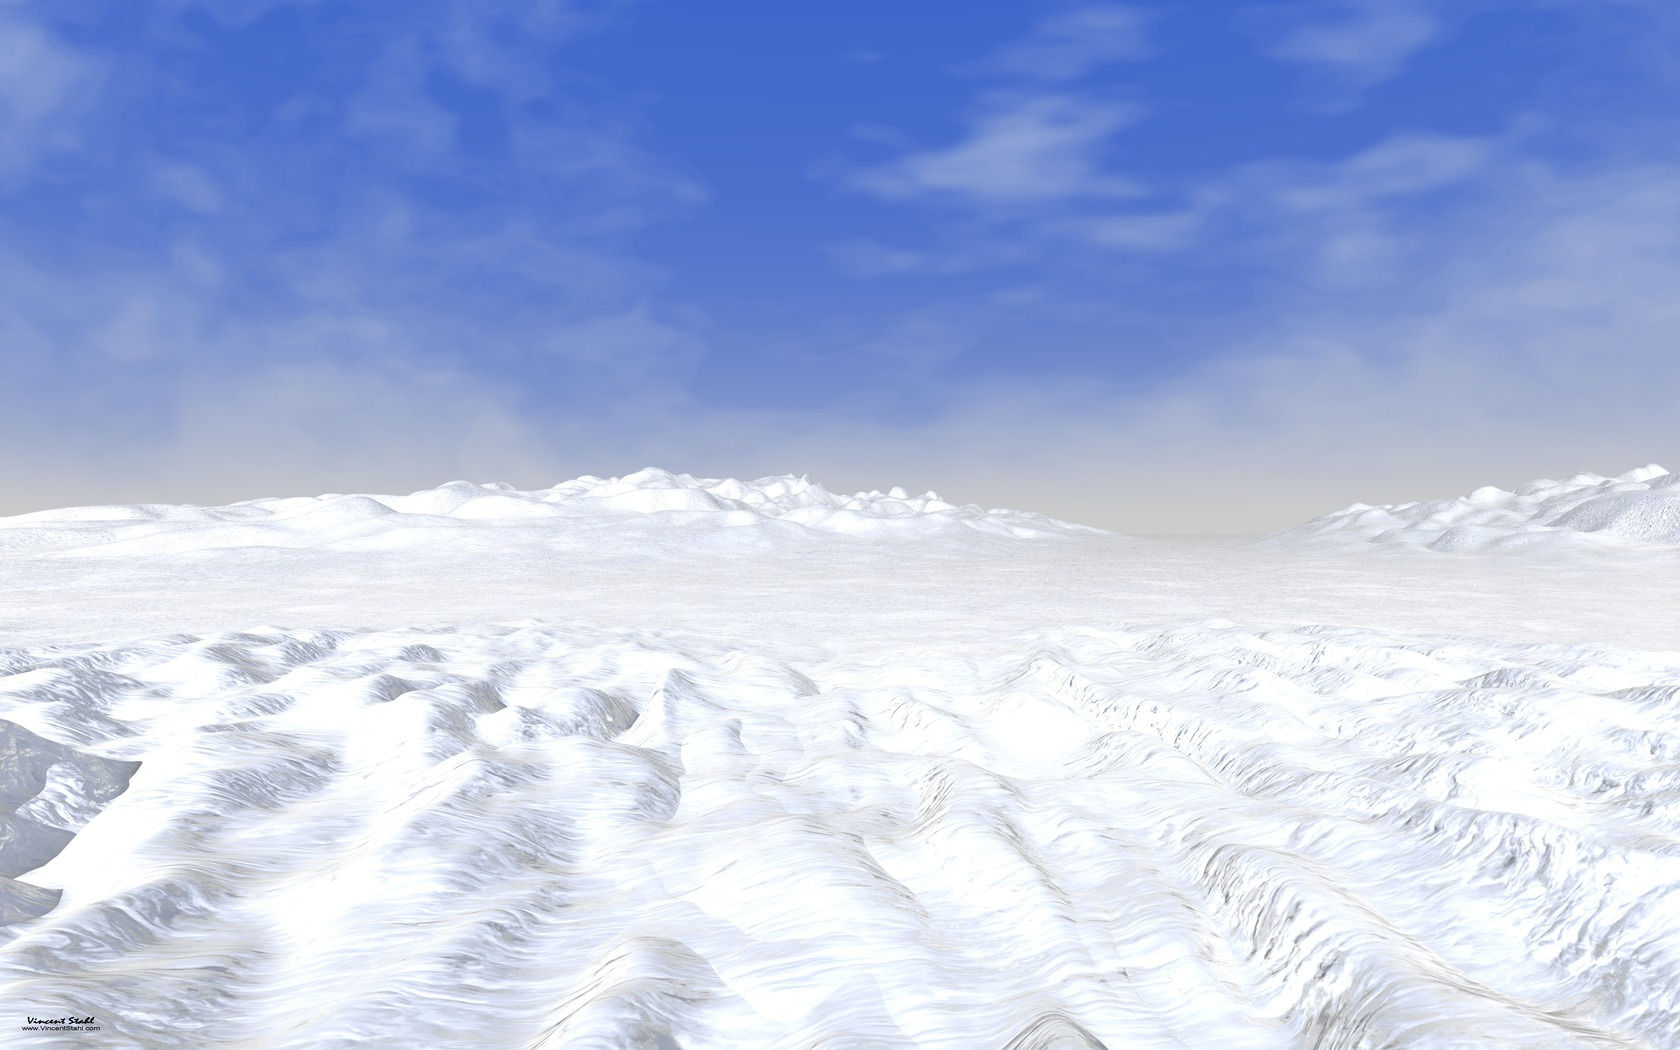 Snow Field - Desktop backgrounds